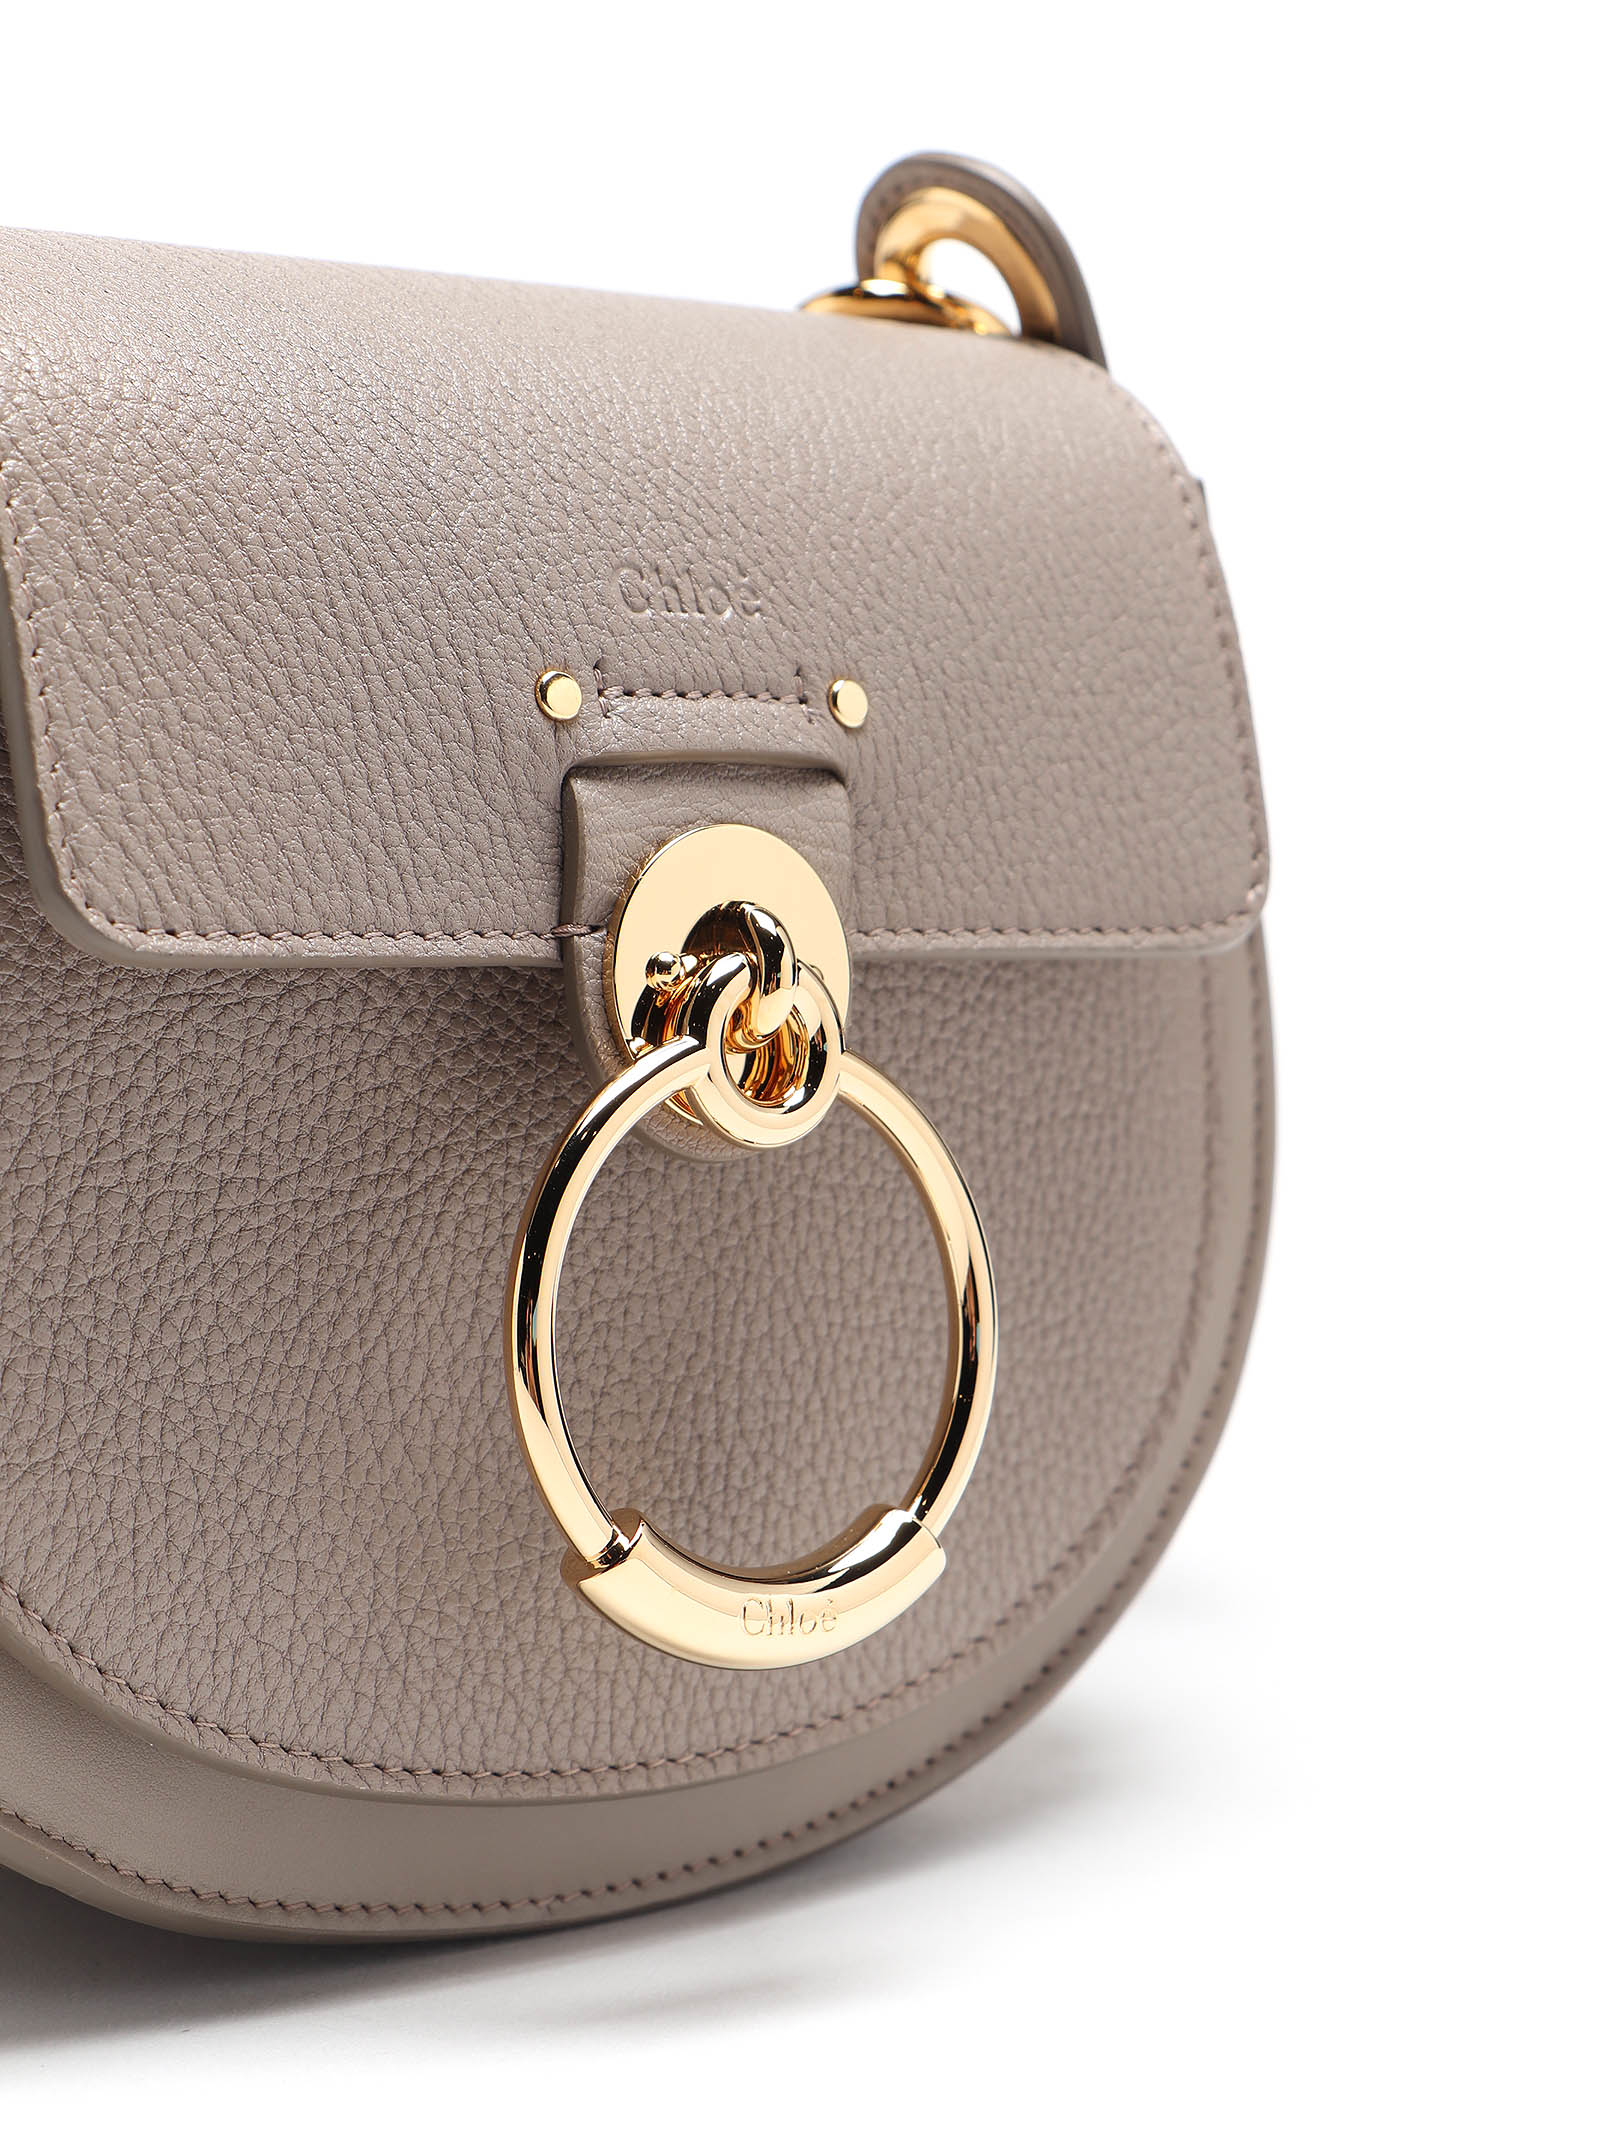 Picture of Chloe` | Small Tess Bag